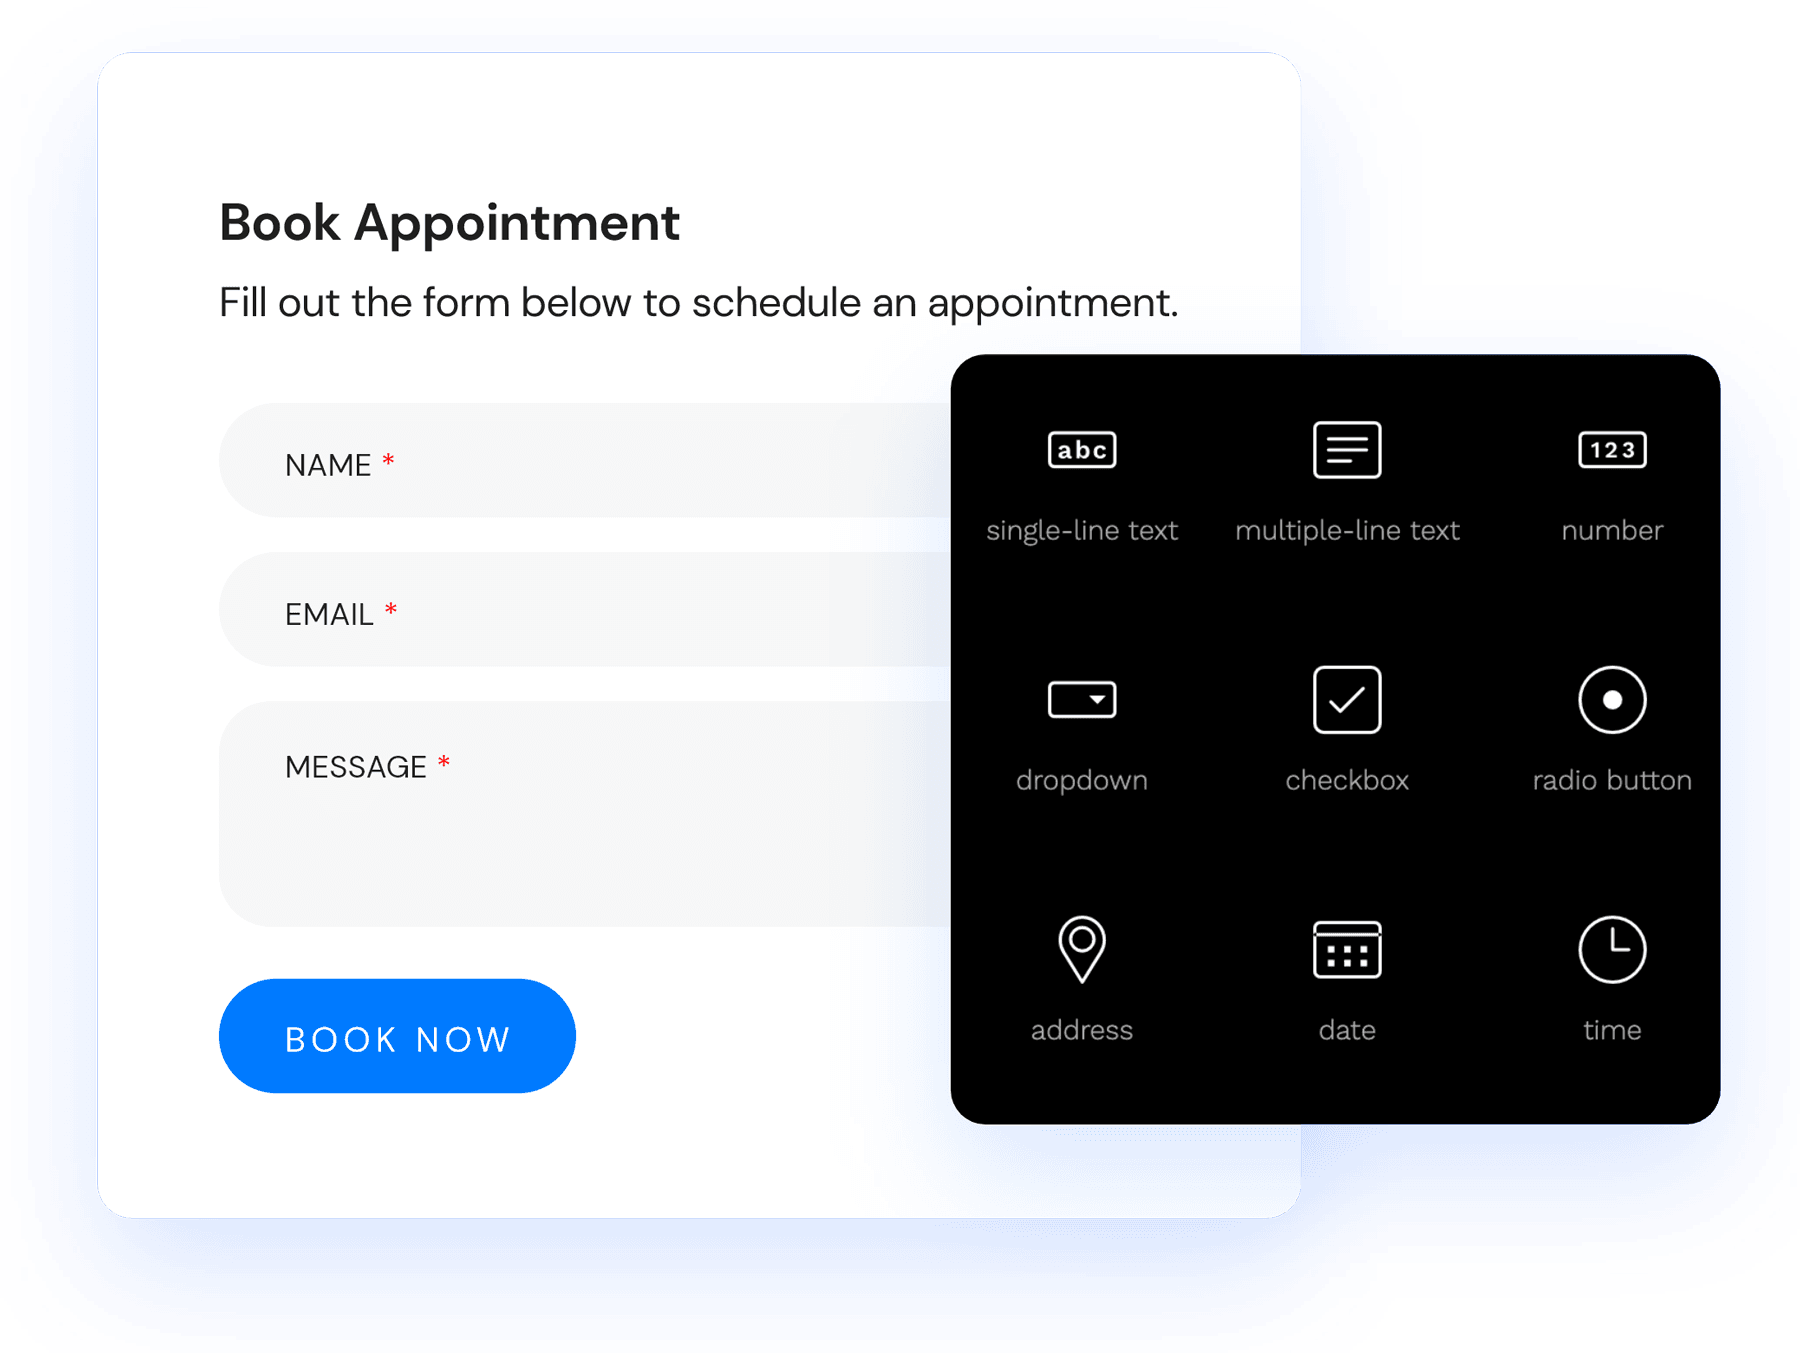 Editing Booking Appointment